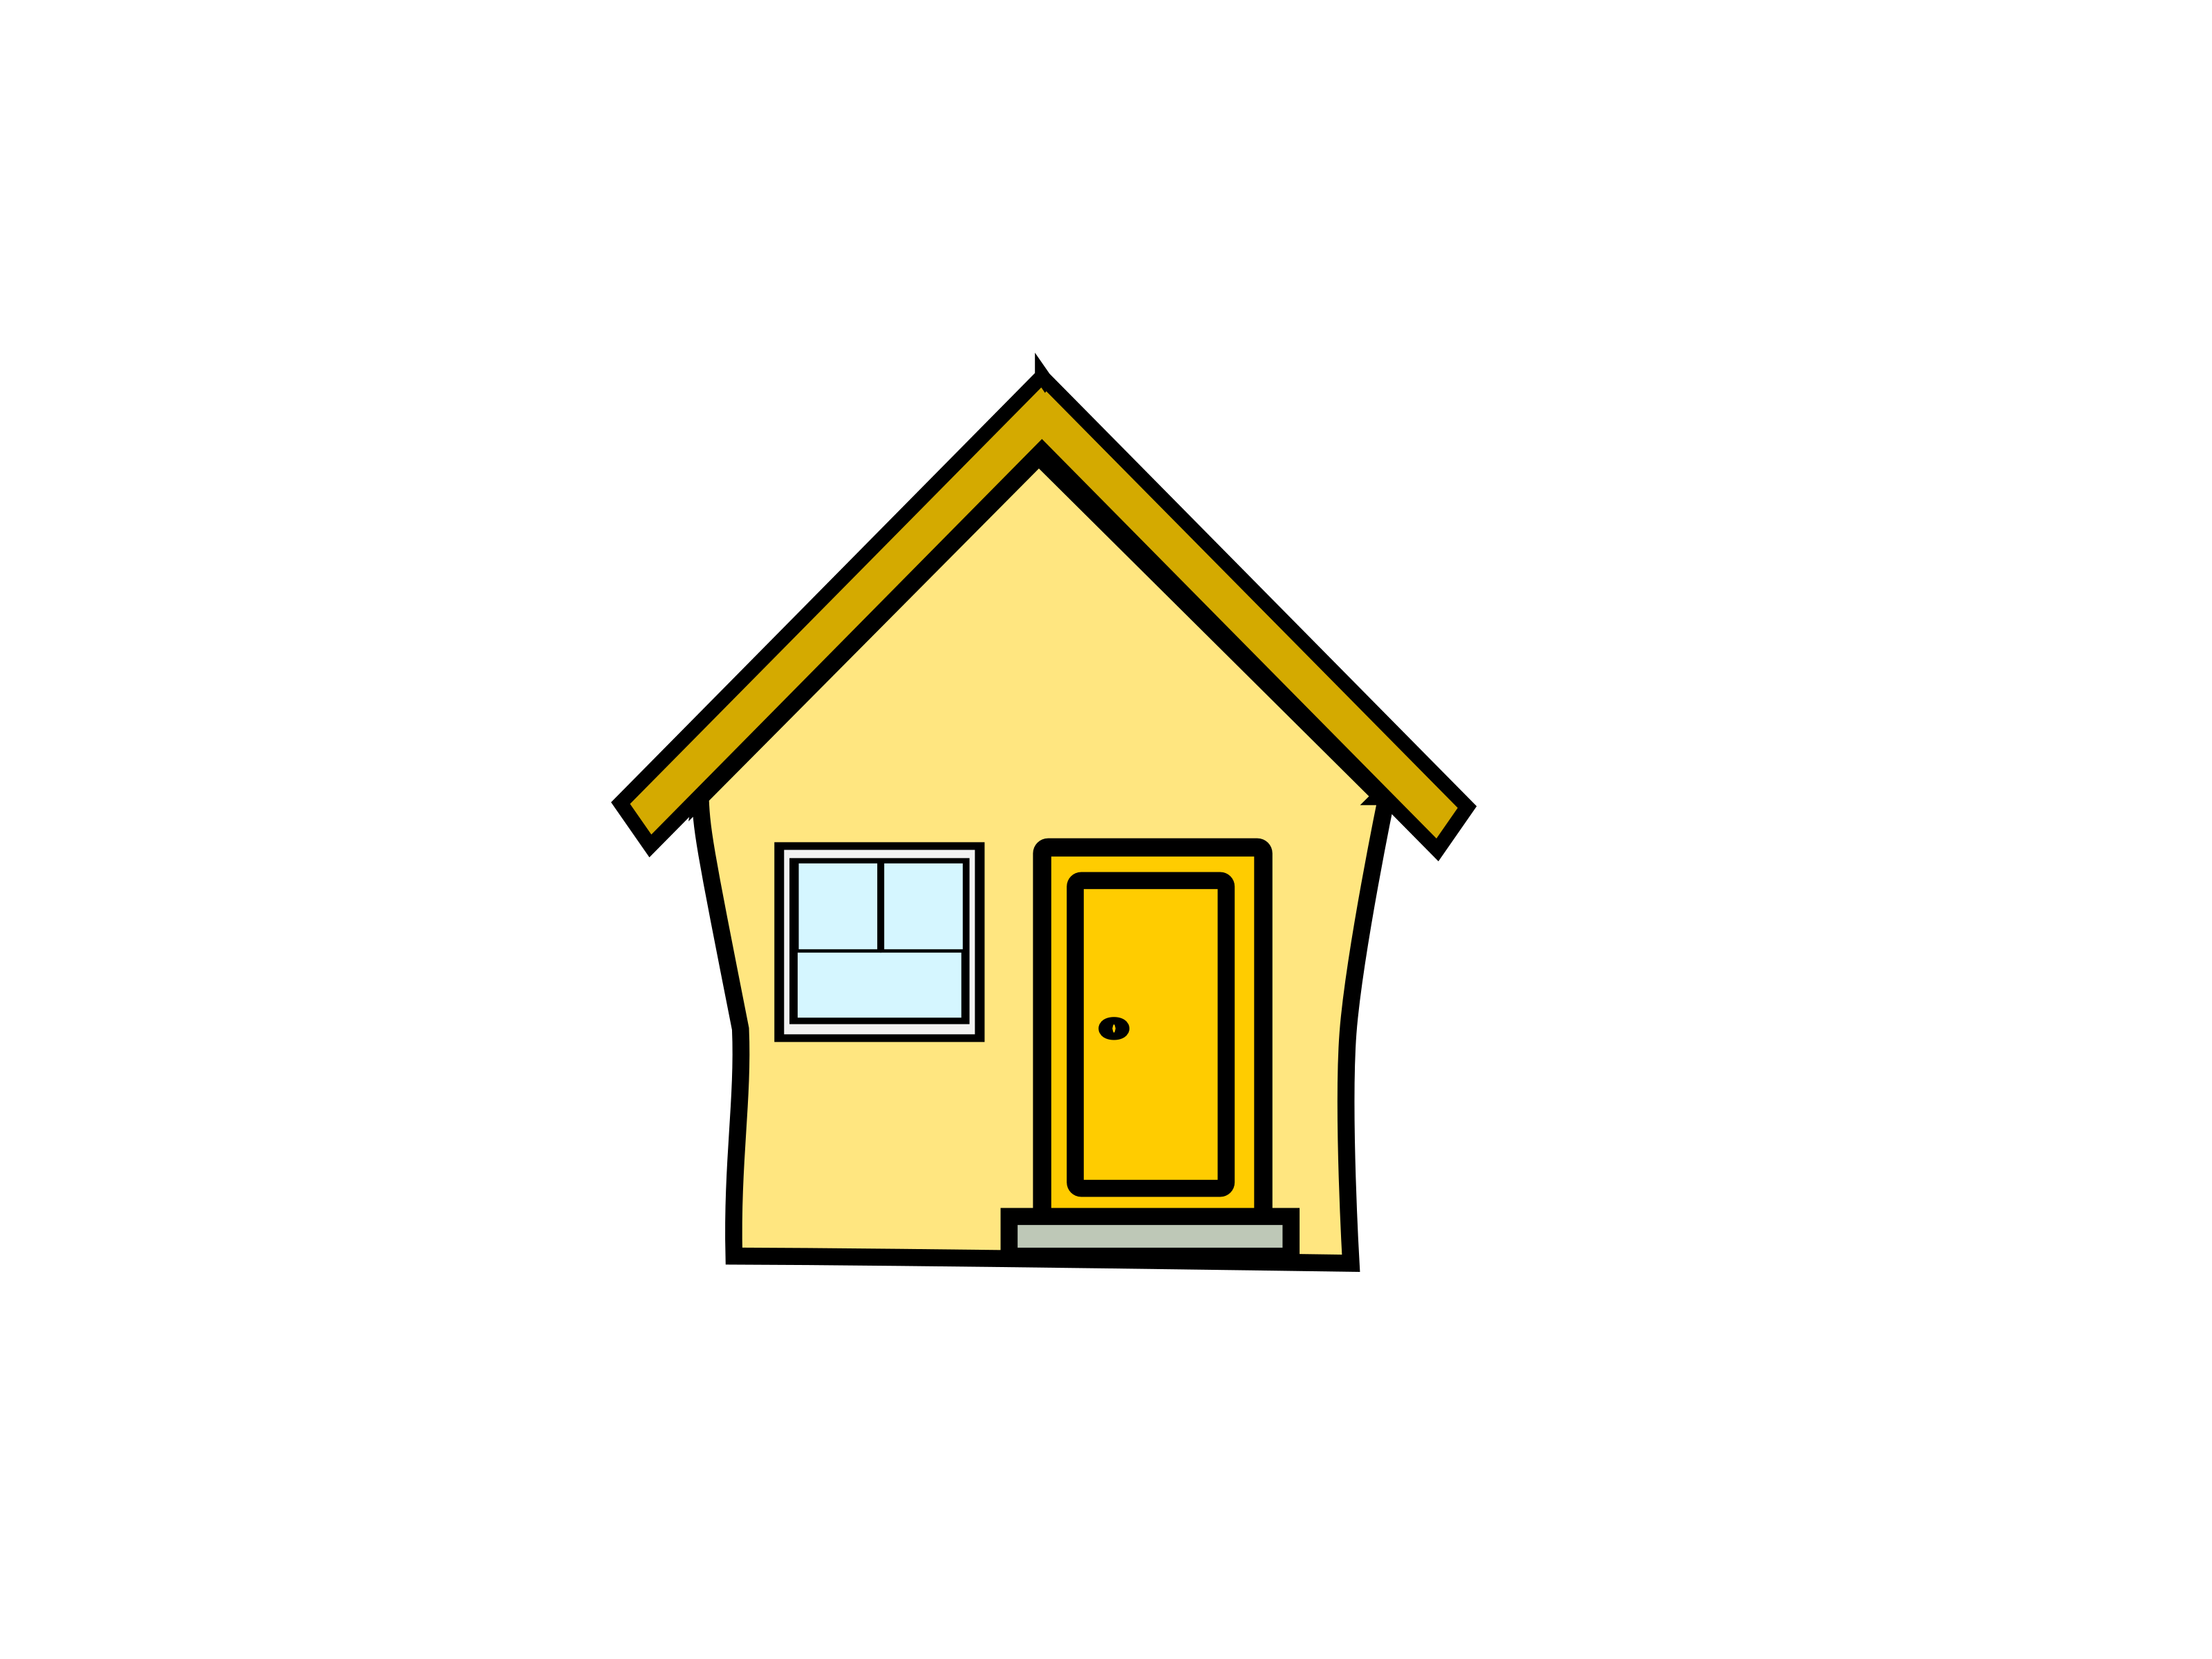 Clipart haus 6 » Clipart Station.